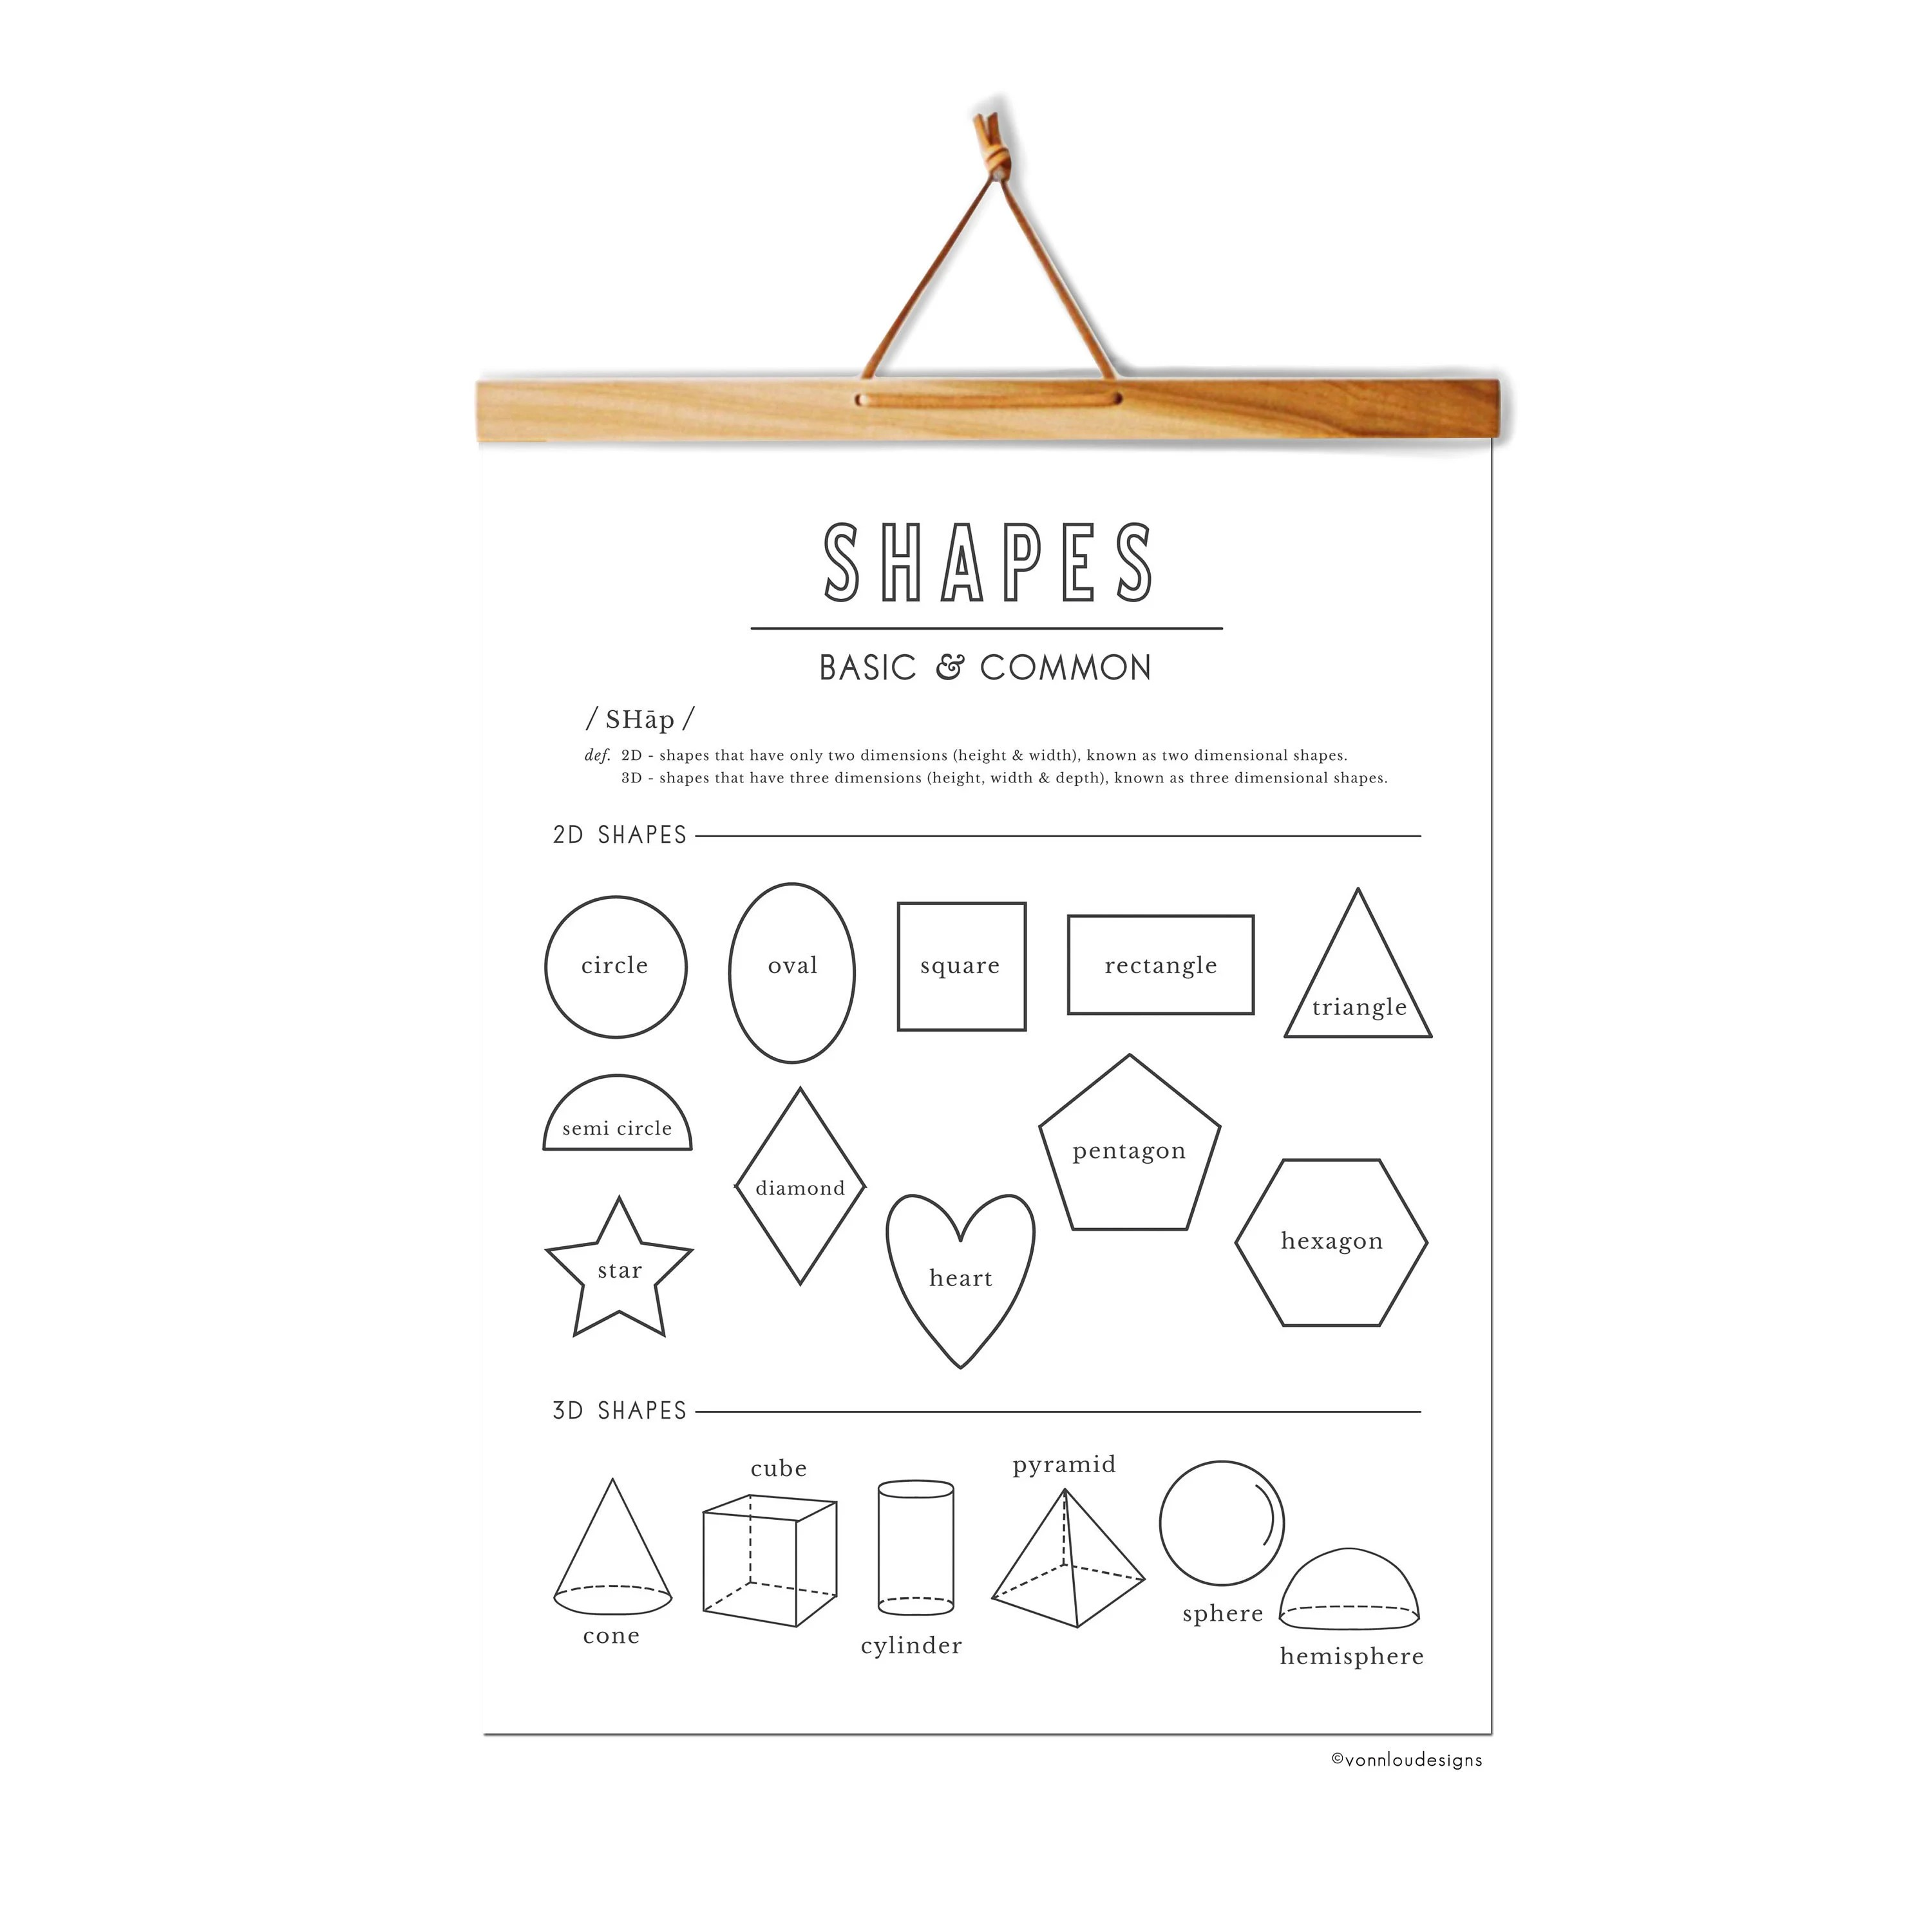 Shapes chart 2D shapes 3D shapes hand illustrated Etsy